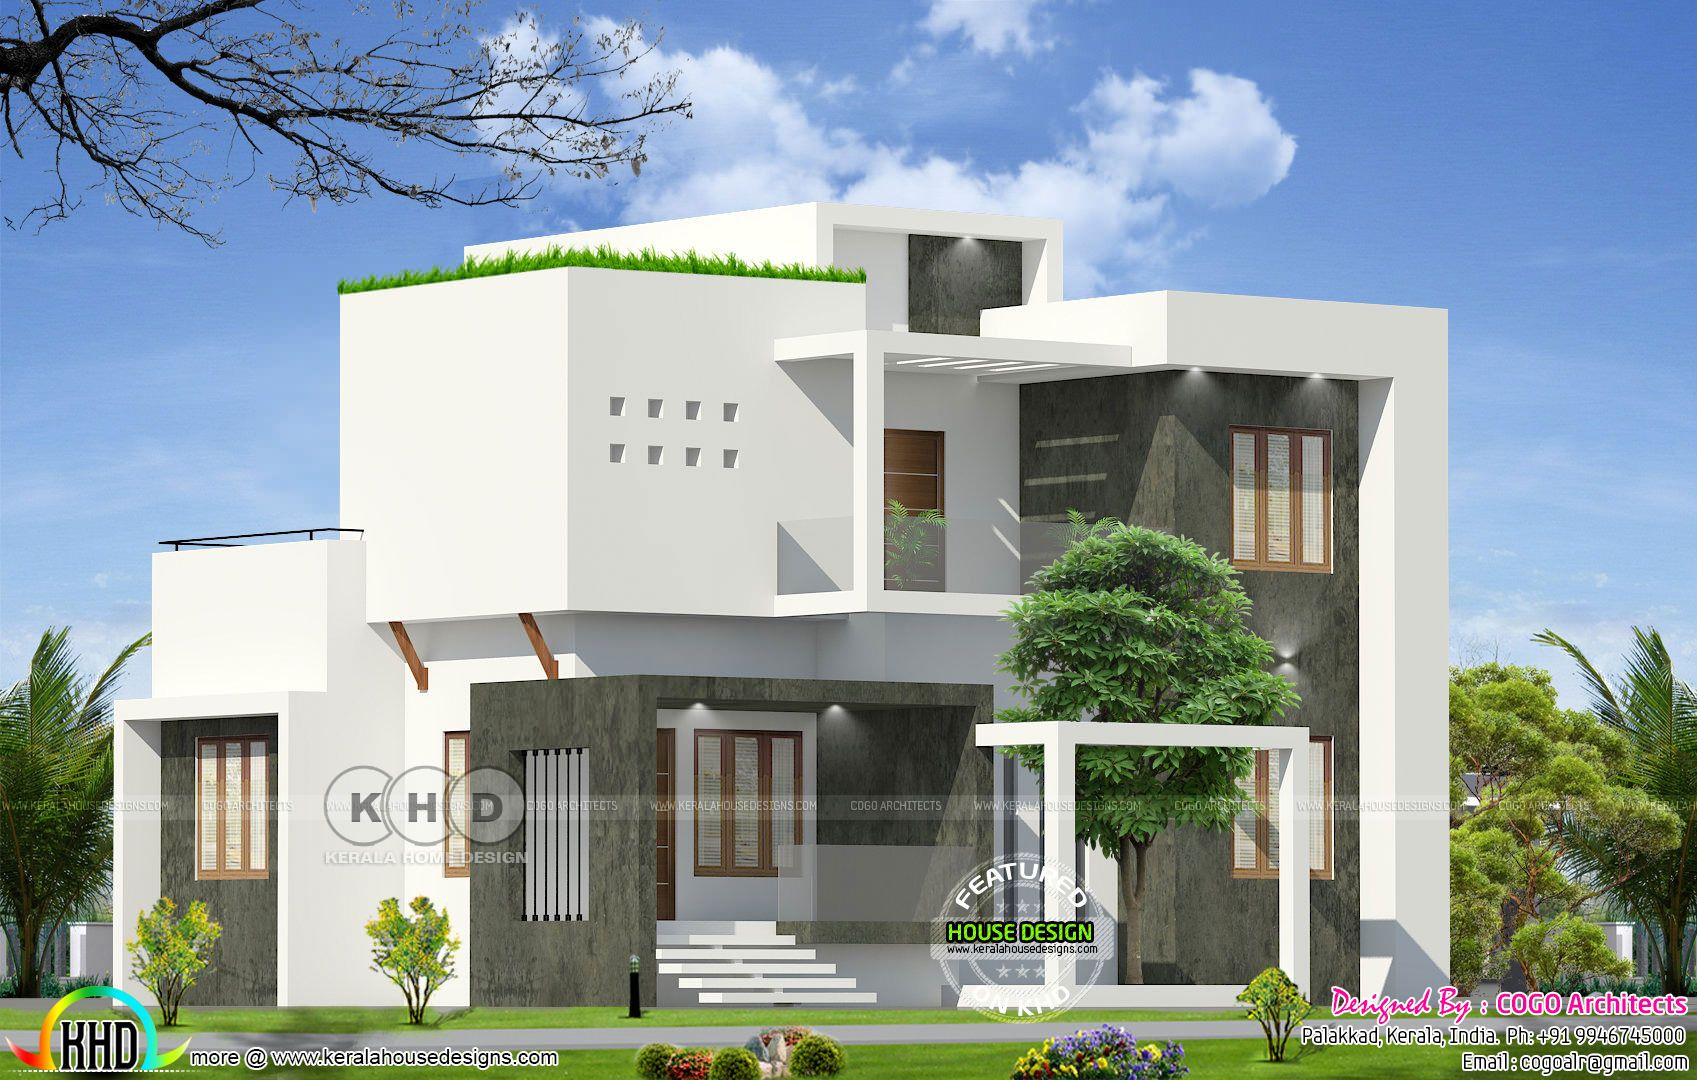 25 Lakhs Budget Contemporary Beautiful Home In 2020 Modern House Facades Duplex House Design Facade House